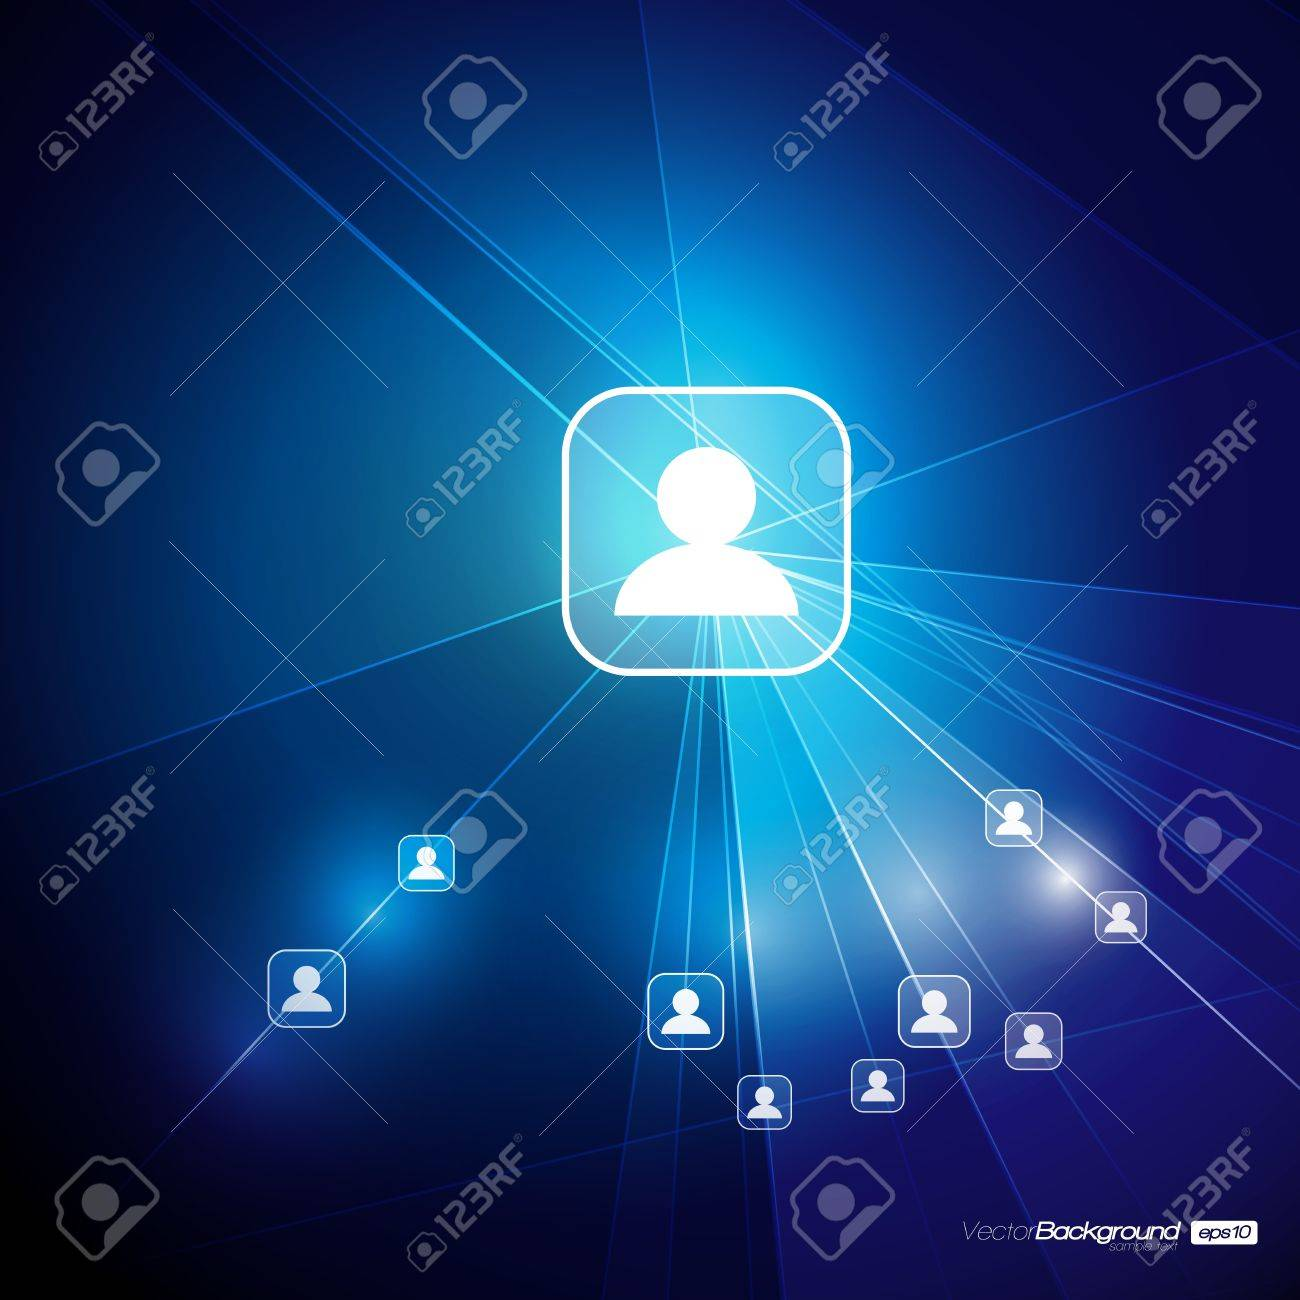 Social Media Abstract Illustration   Communication in the Global Computer Networks   EPS10 Vector Design Stock Vector - 18098204